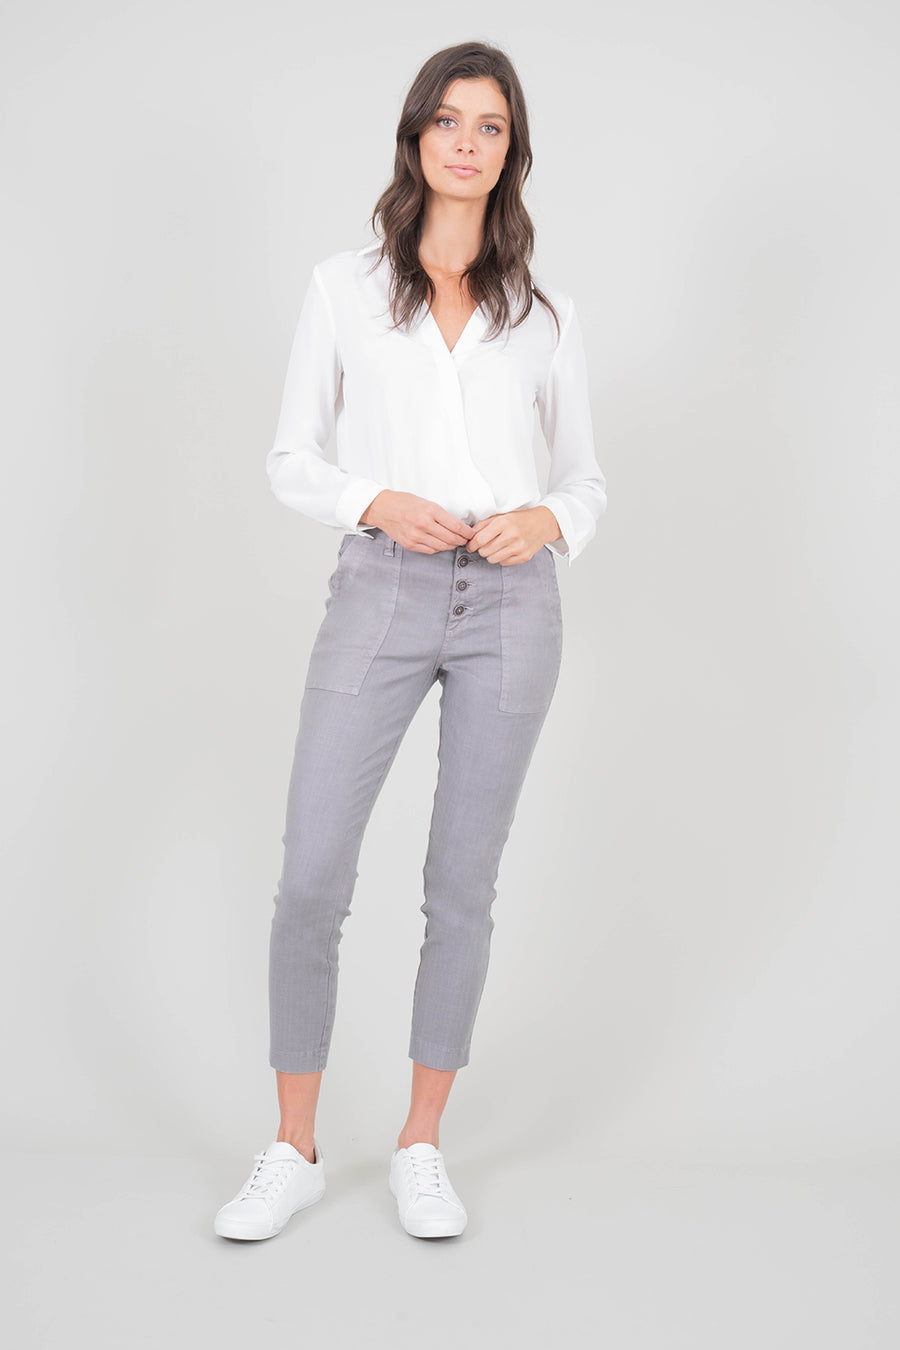 Exposed Button Fly Utility Pant - level99jeans